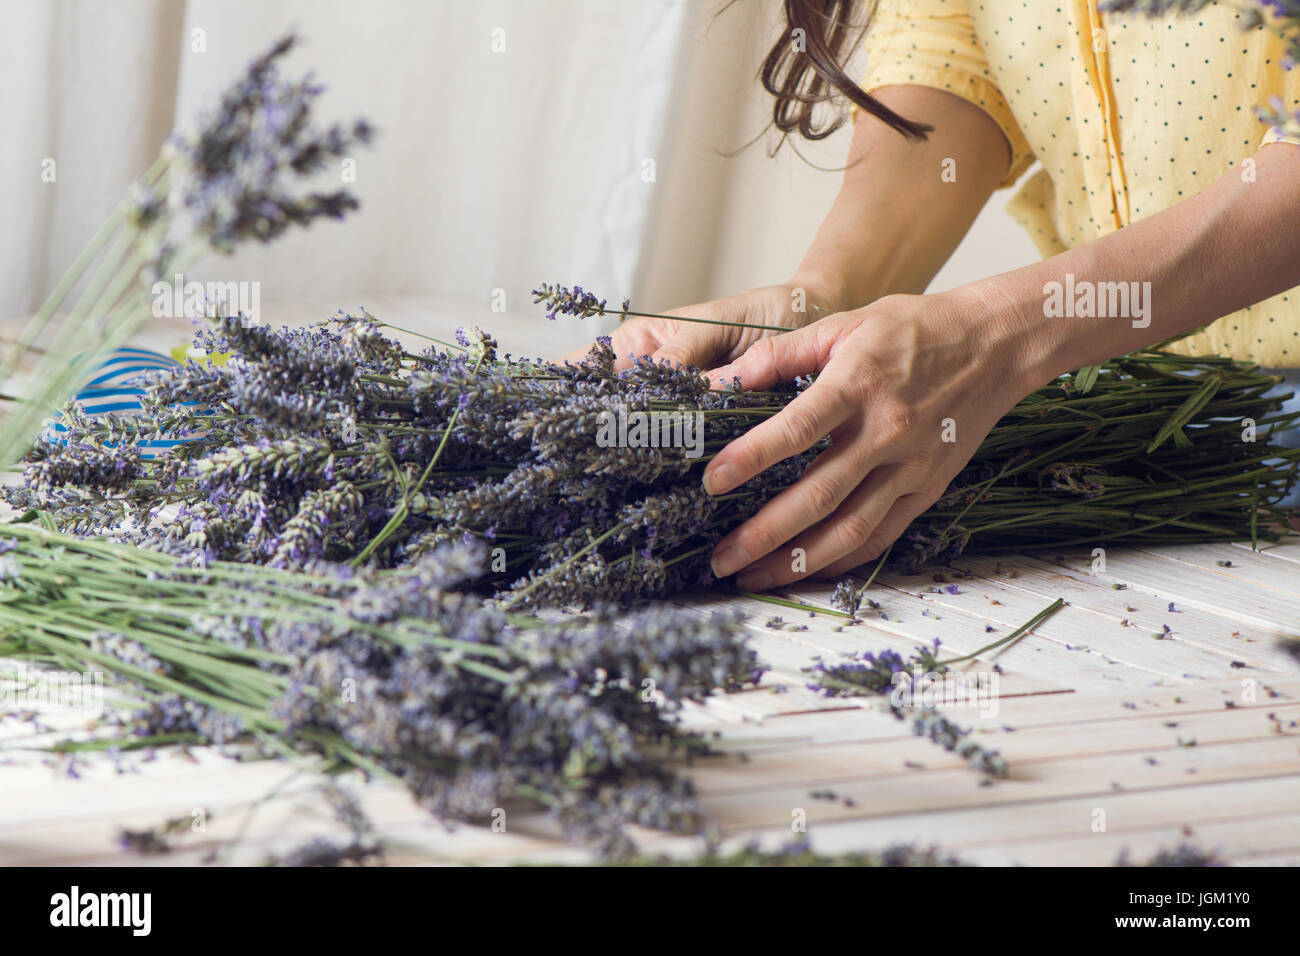 Florist at work: woman creating bouquet of natural lavender flowers, in te wooden table, small business concept. - Stock Image